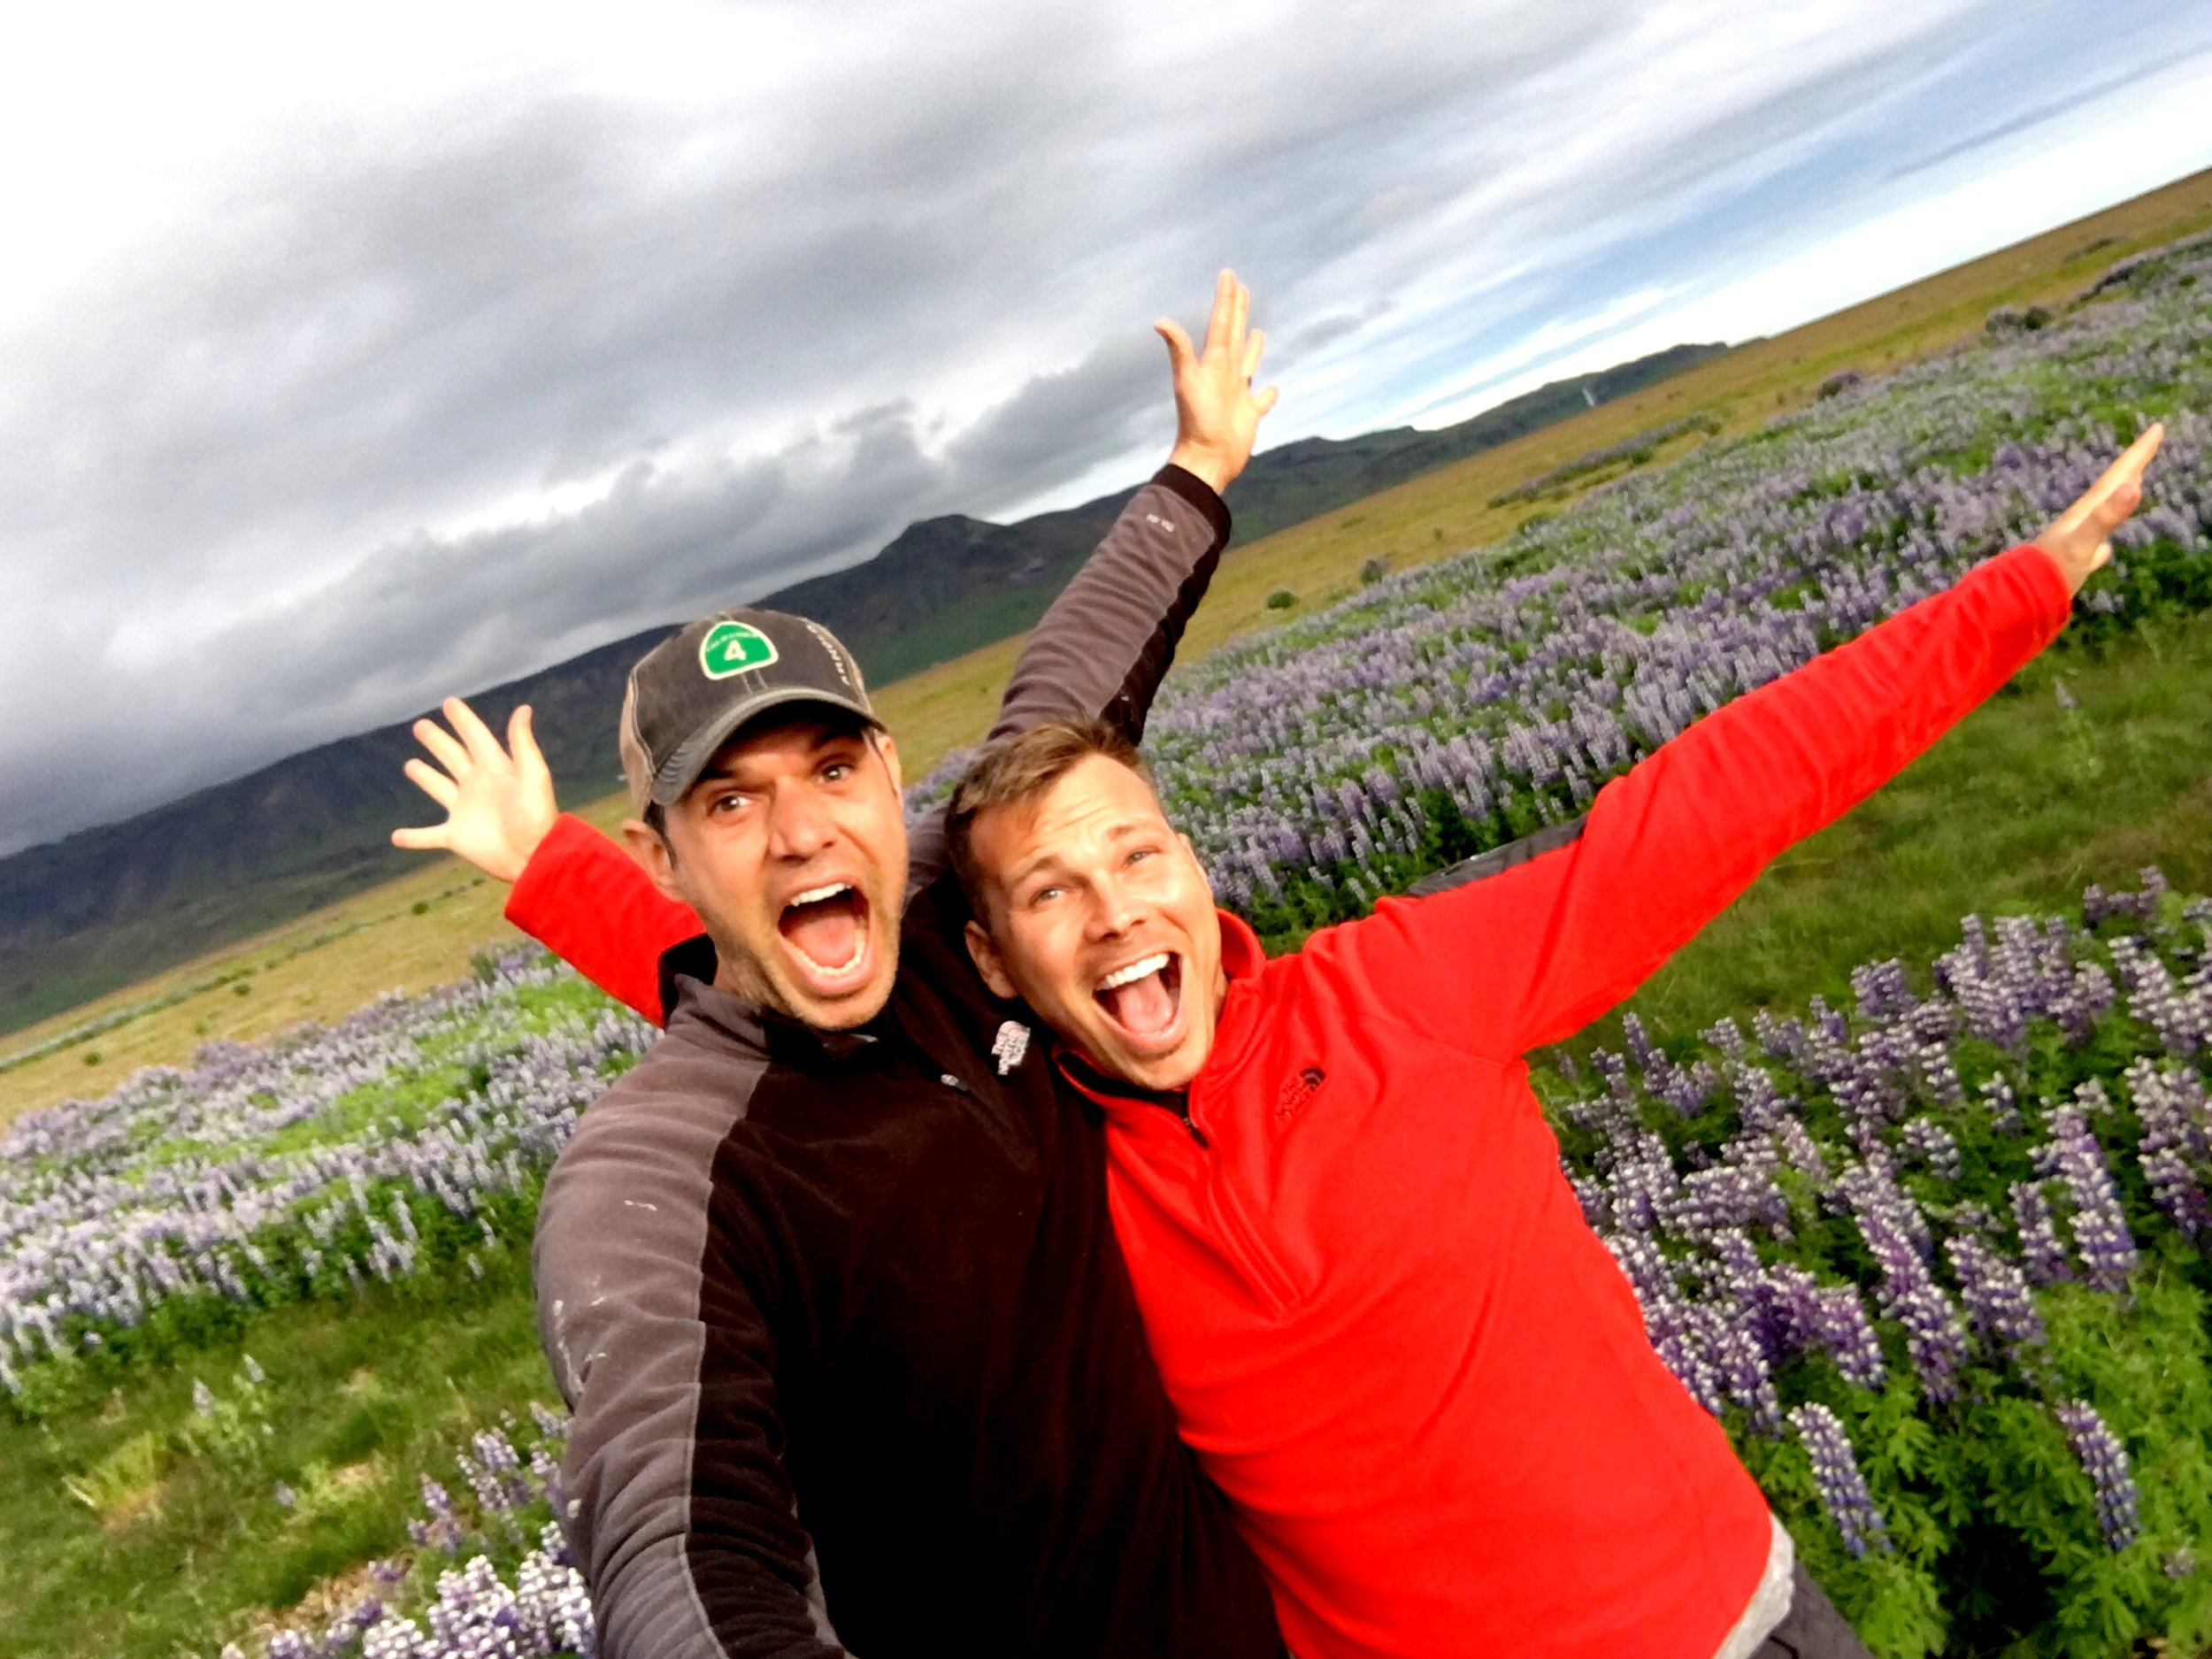 Serving up selfie-stick realness in the fields of Iceland during our first camper van trip in 2017.